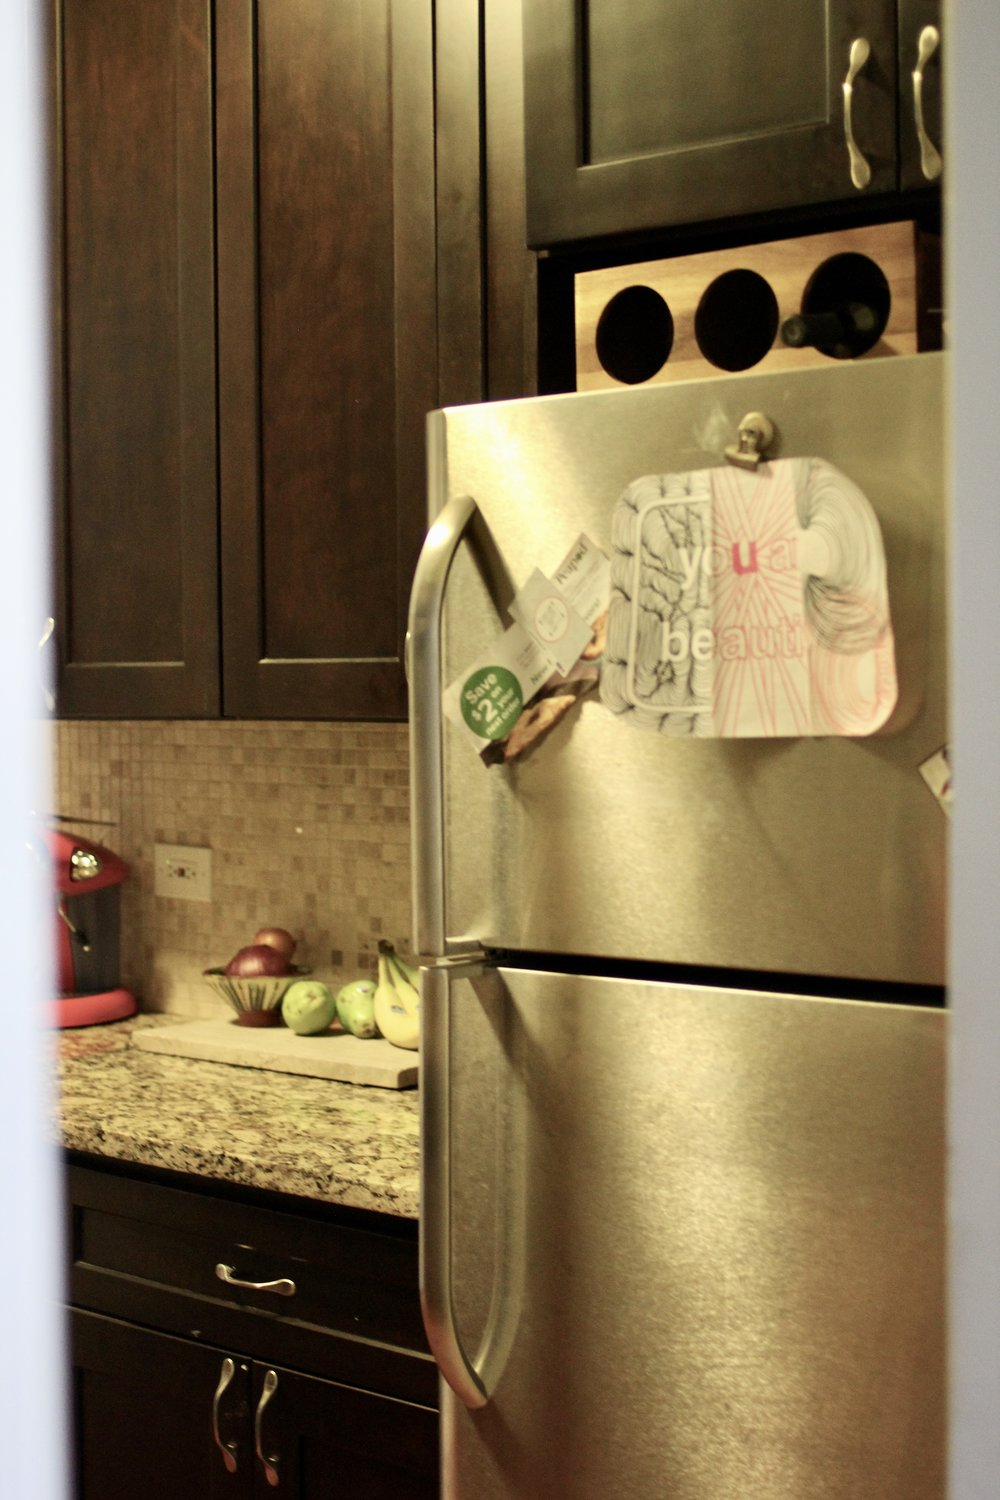 Refrigerator in kitchen decor